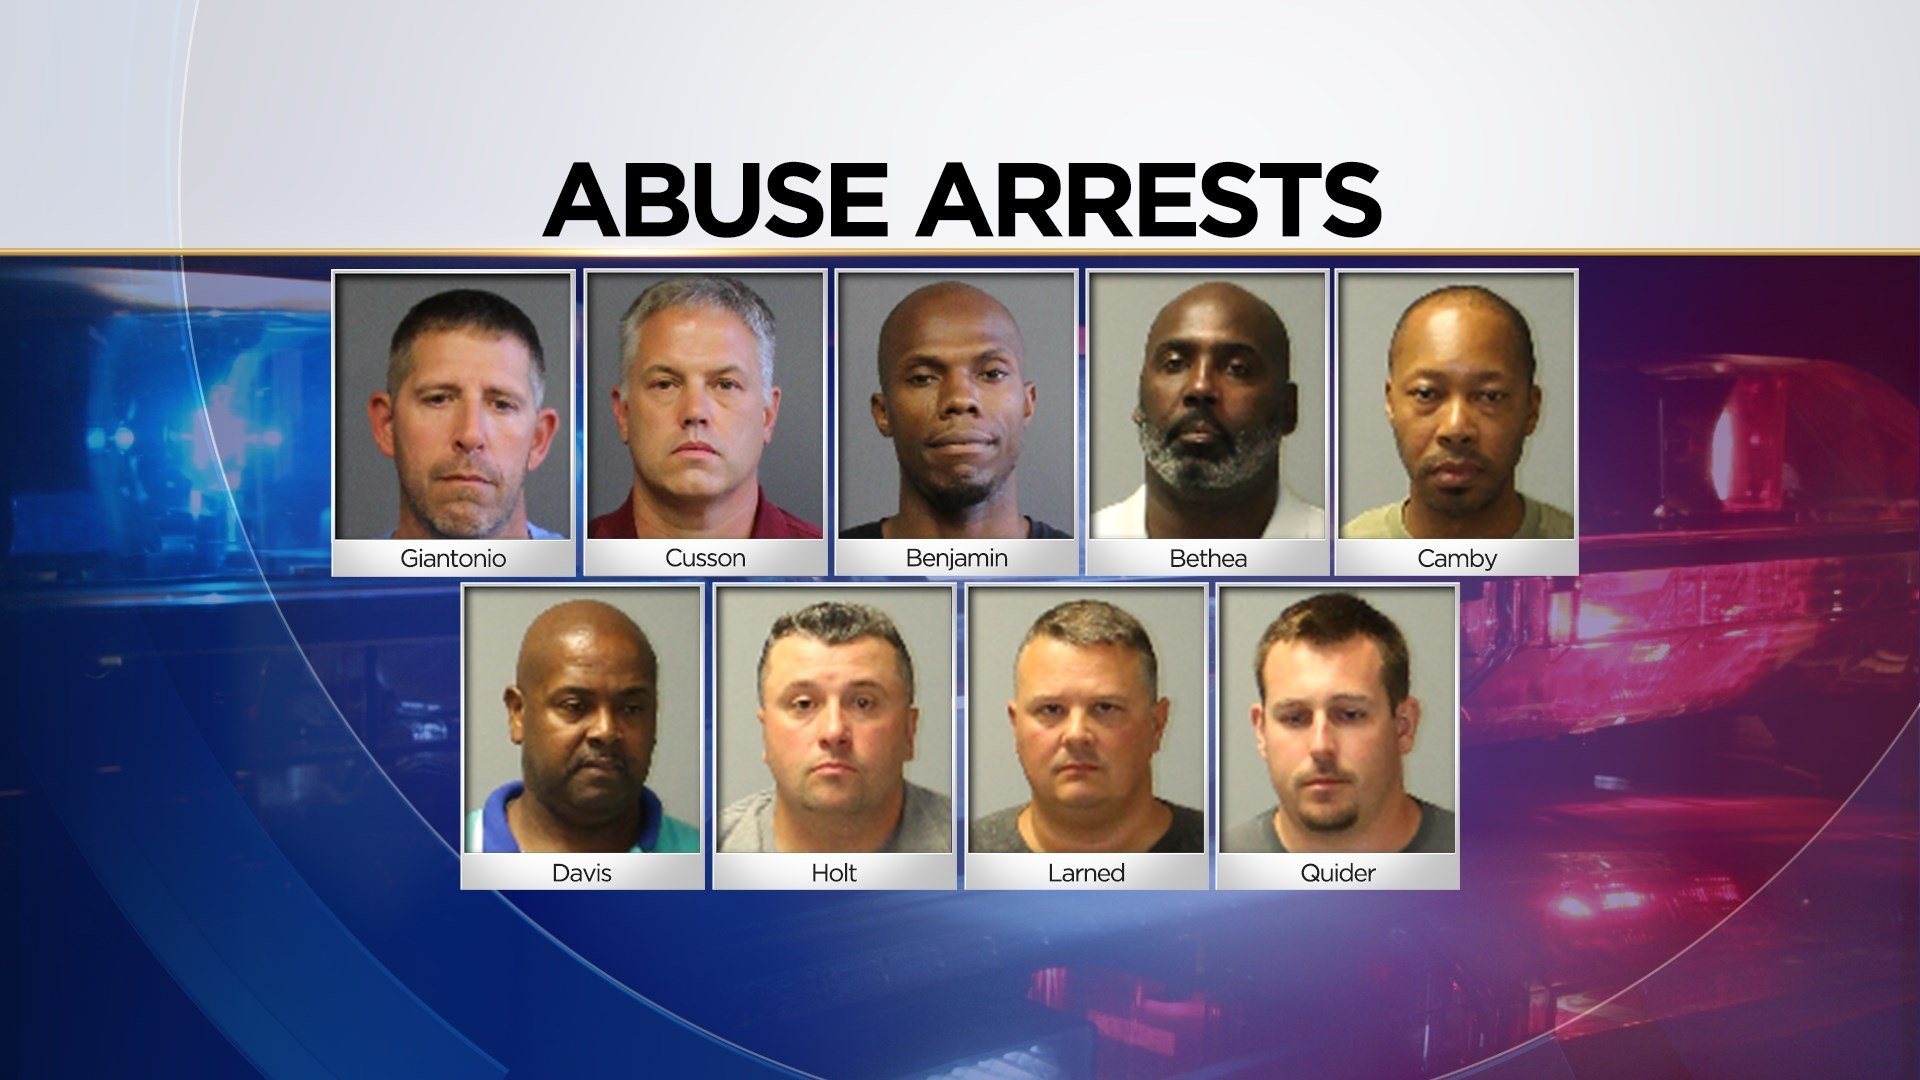 Nine men were arrested following abuse allegations (CVH/WFSB)